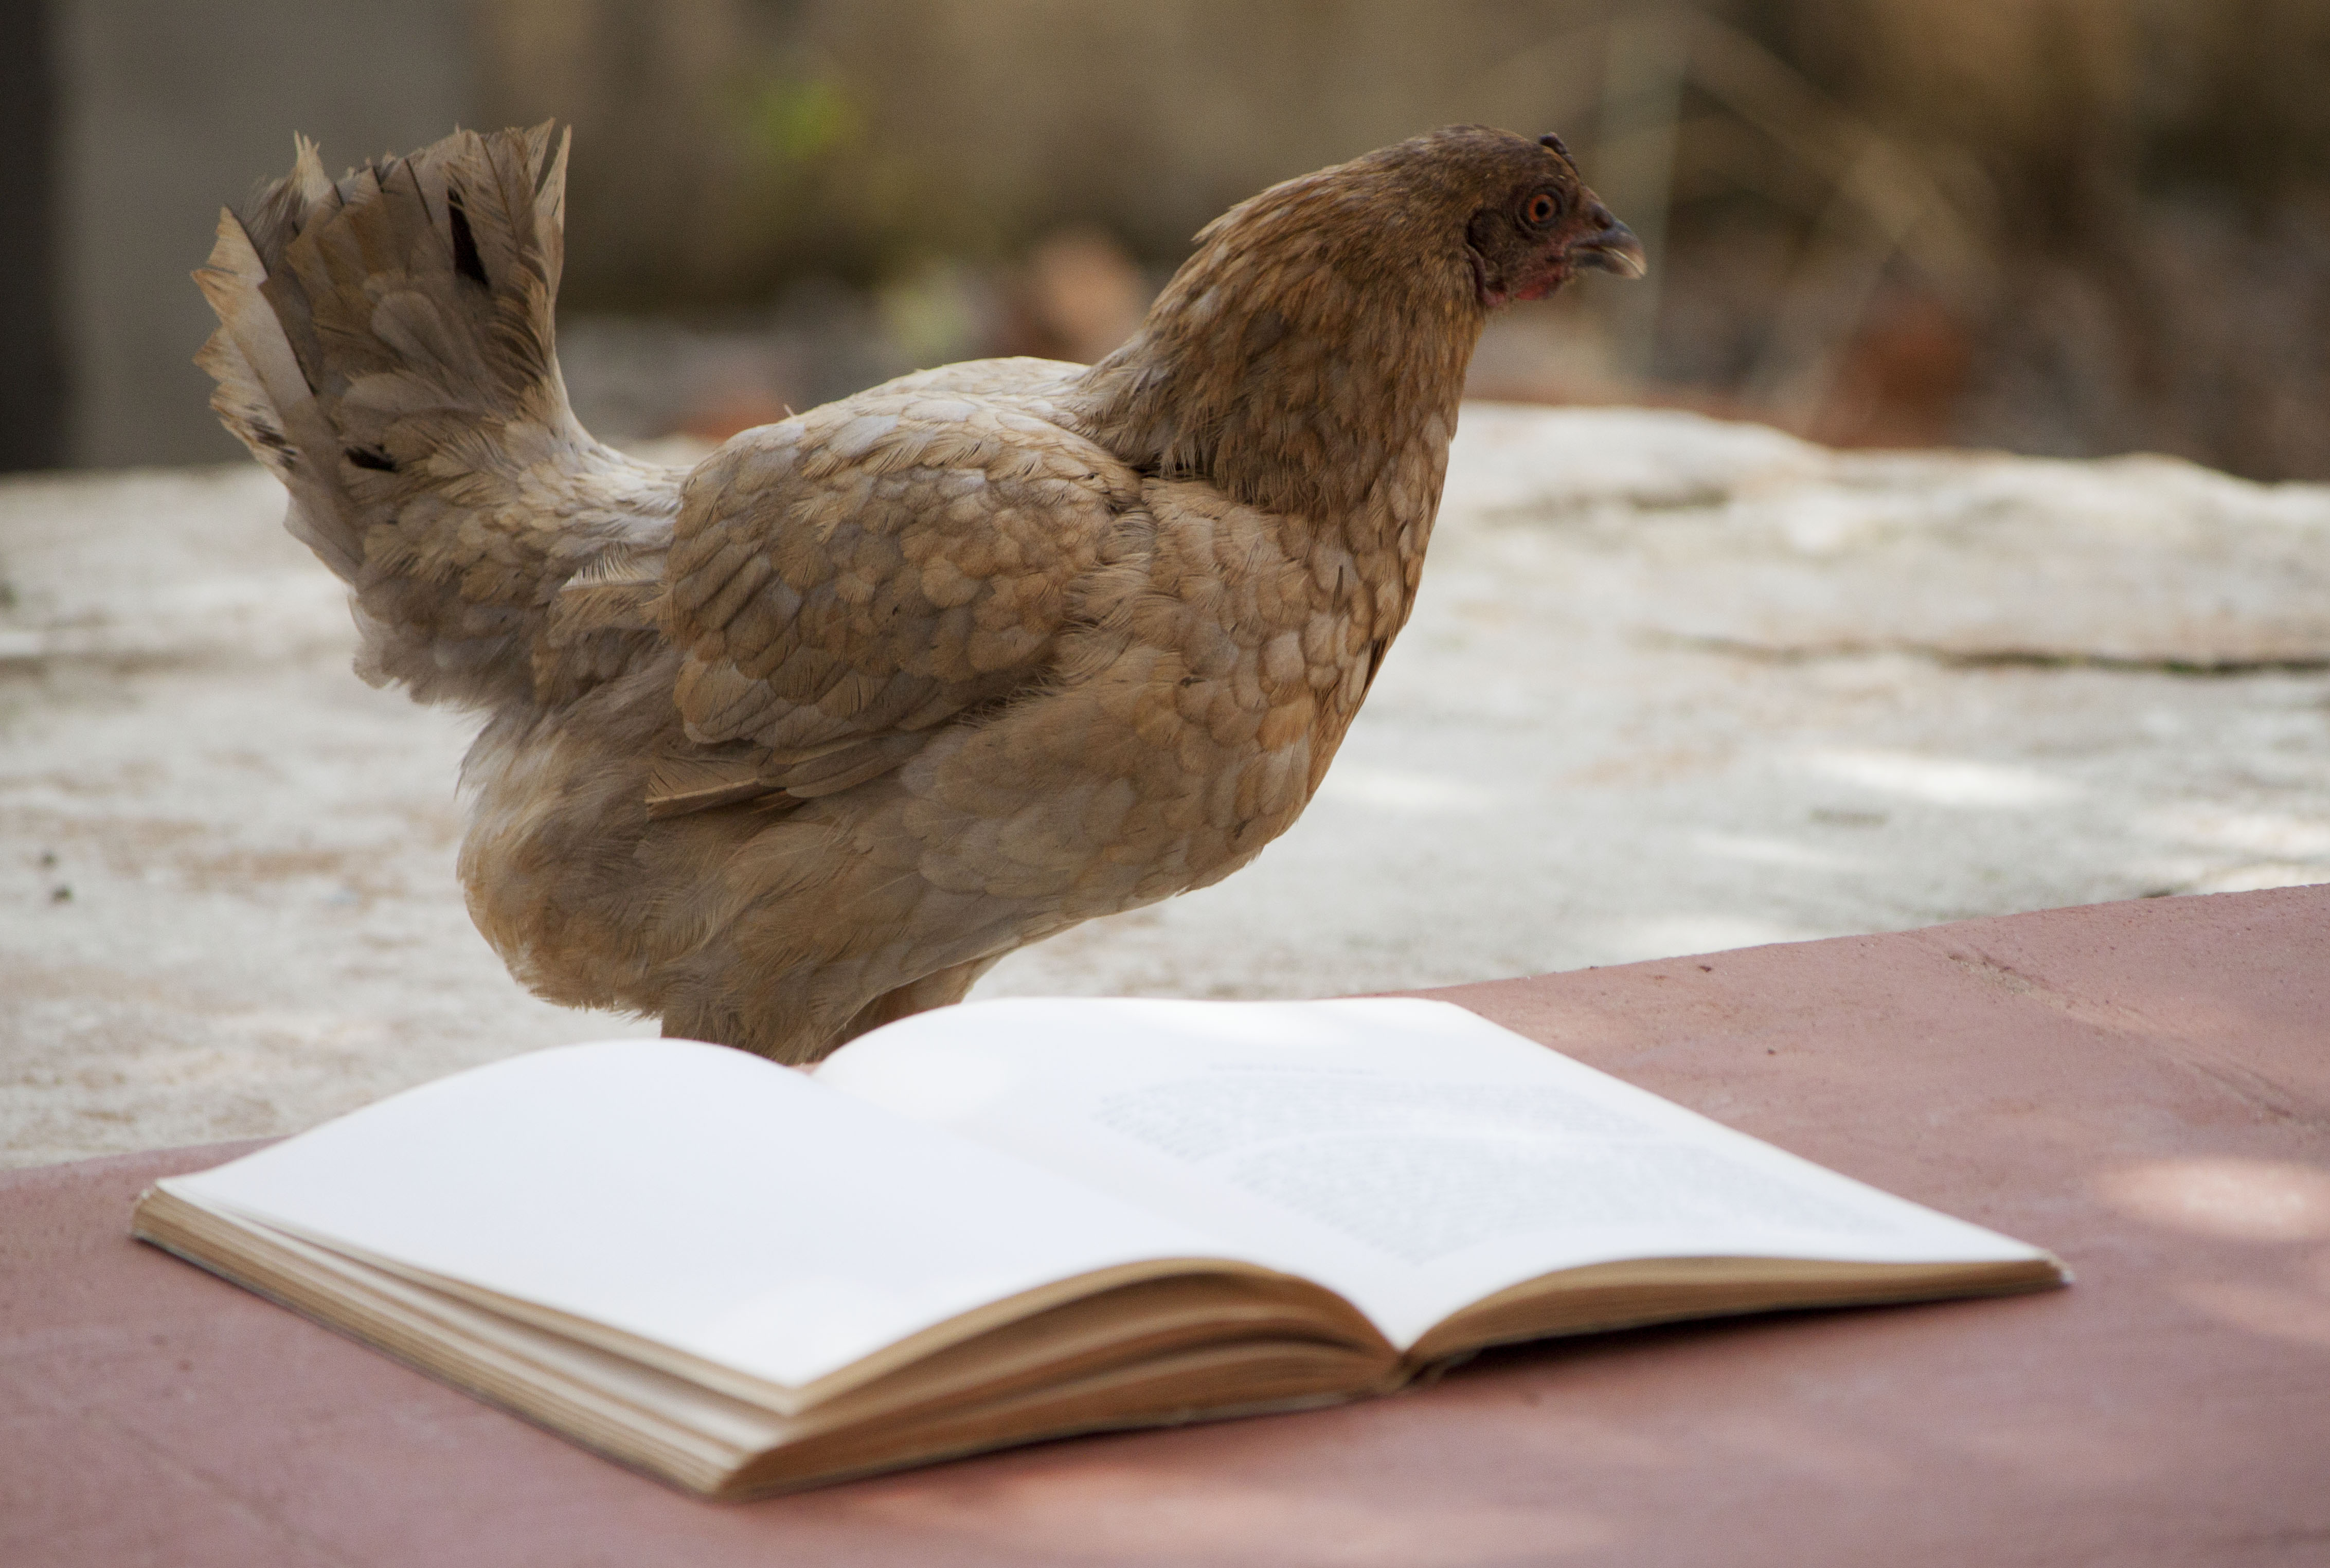 Chicken reading a book, Animal, Female, Rooster, Red, HQ Photo